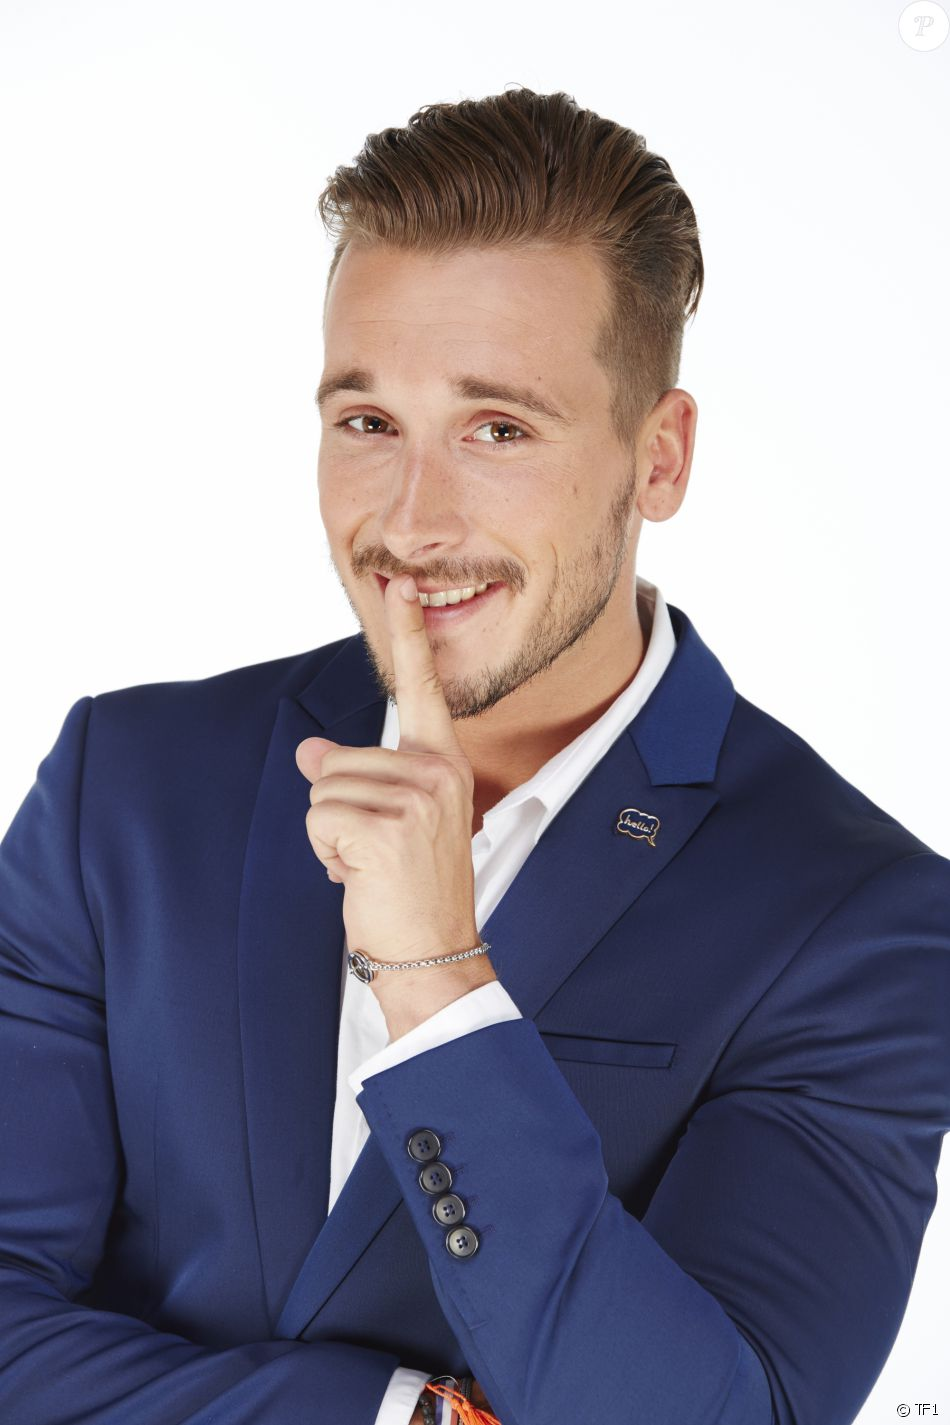 Julien, candidat de Secret Story 10.